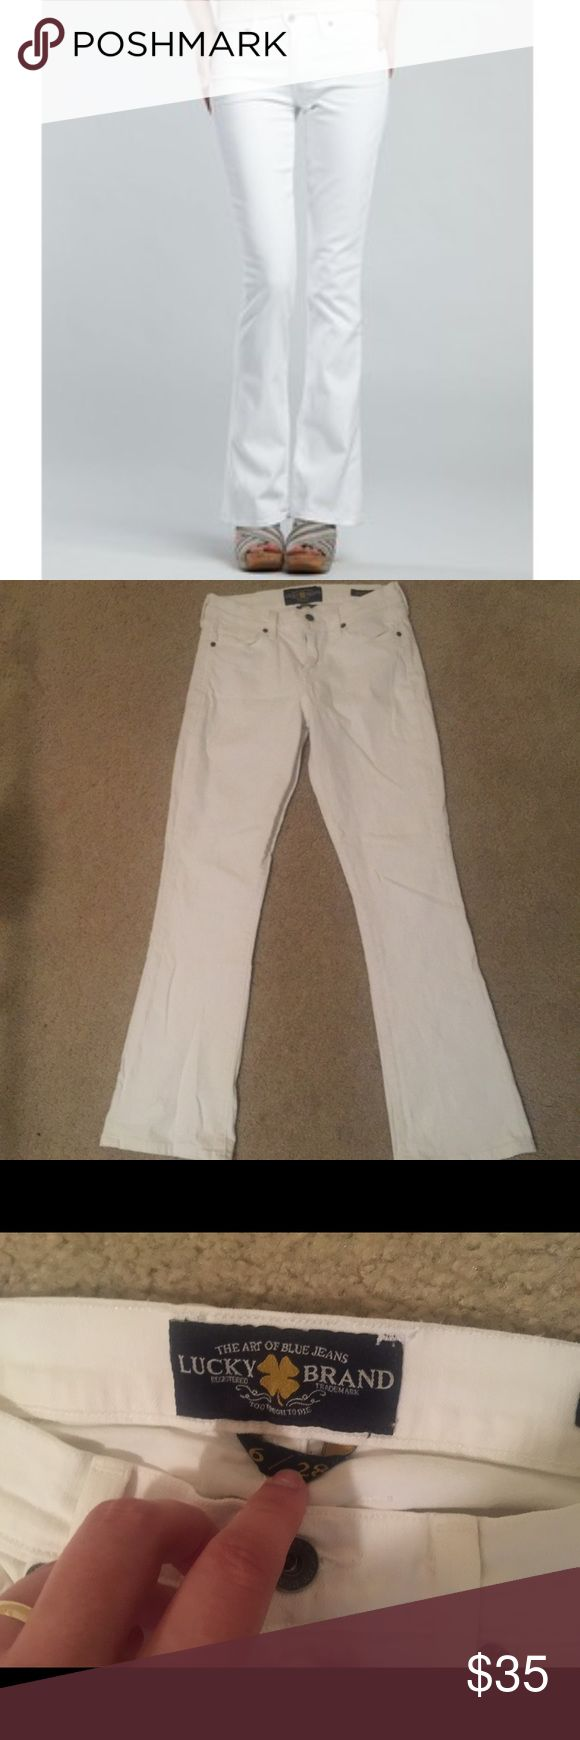 ✨ 1 DAY SALE ✨ Lucky Brand Sofia Bootcut jeans These are in perfect condition and still look pretty new. Great for spring! No rips or stains of any kind. Very comfy and figure flattering. Mid rise. I am happy to provide specific measurements if needed. Just let me know  Lucky Brand Jeans Boot Cut